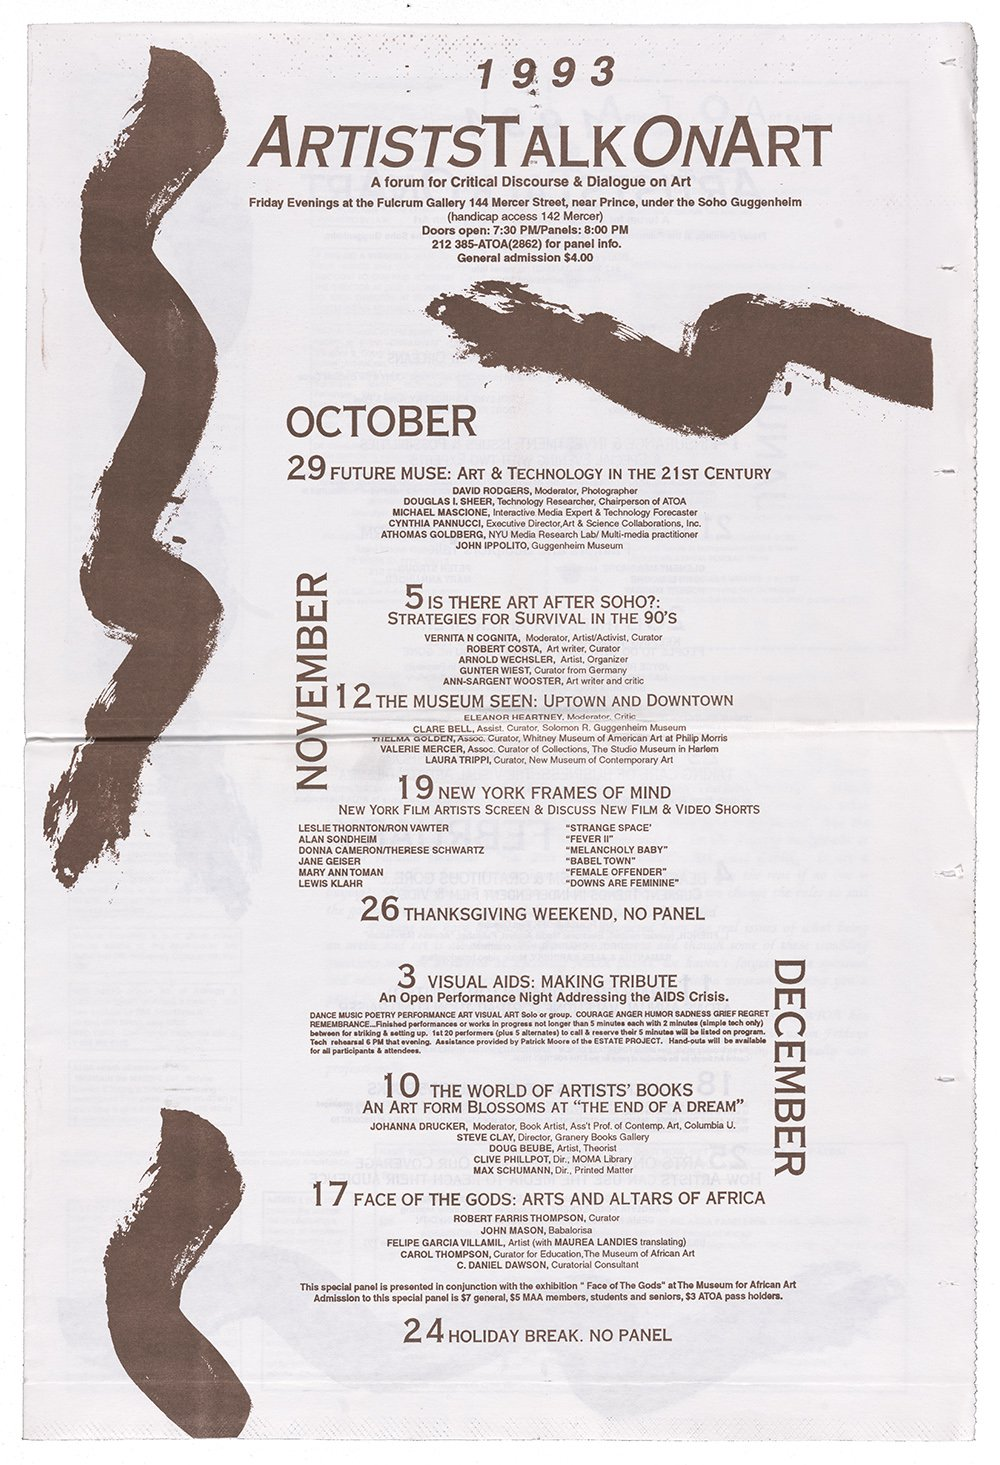 Printed flyer with brown text and illustrations resembling marks made by a paint brush on cream paper.